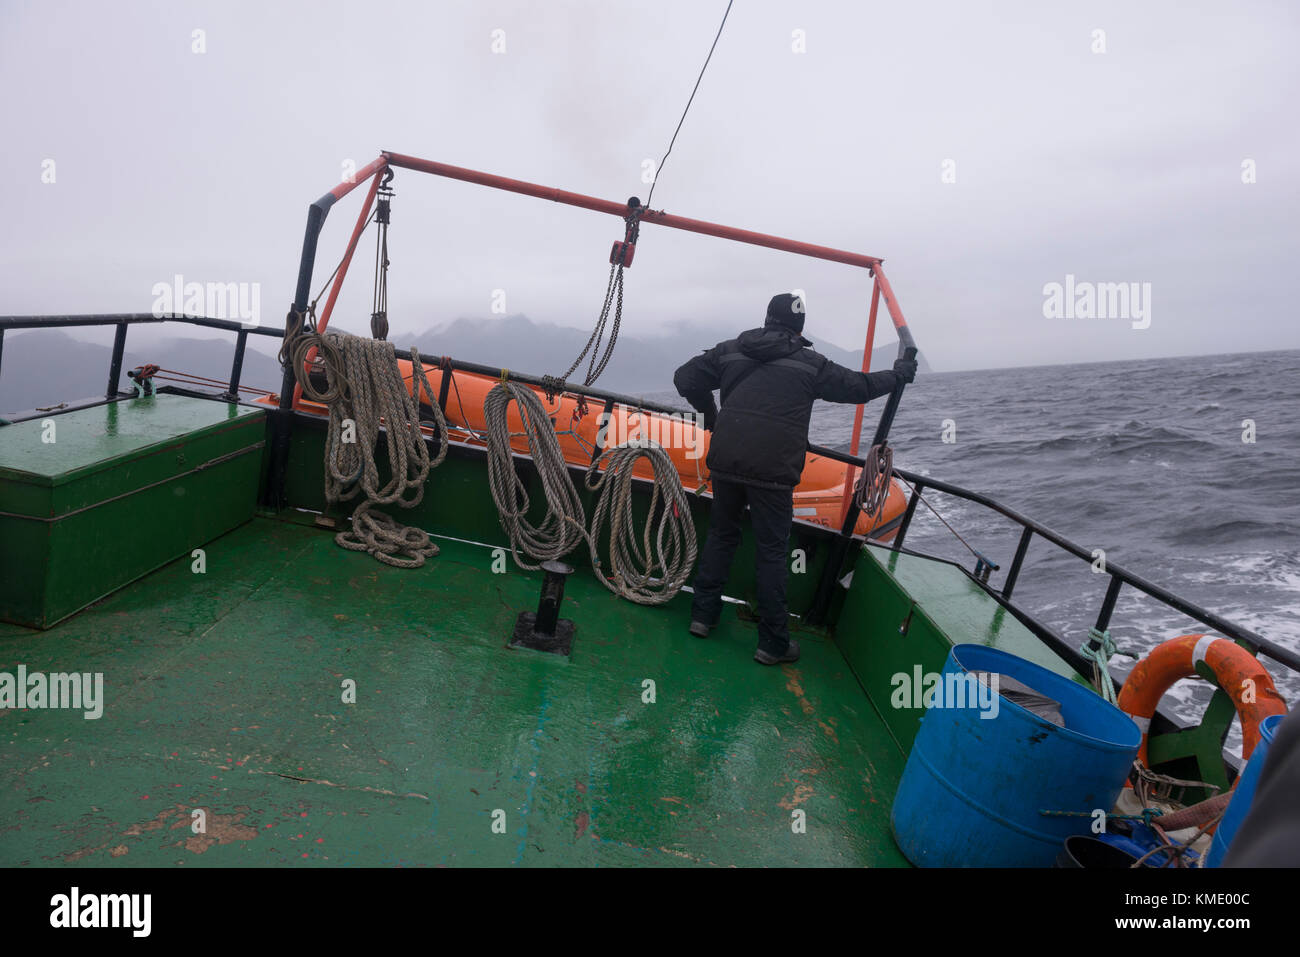 Boat navigating through the Straits of Magellan in heavy seas - Stock Image